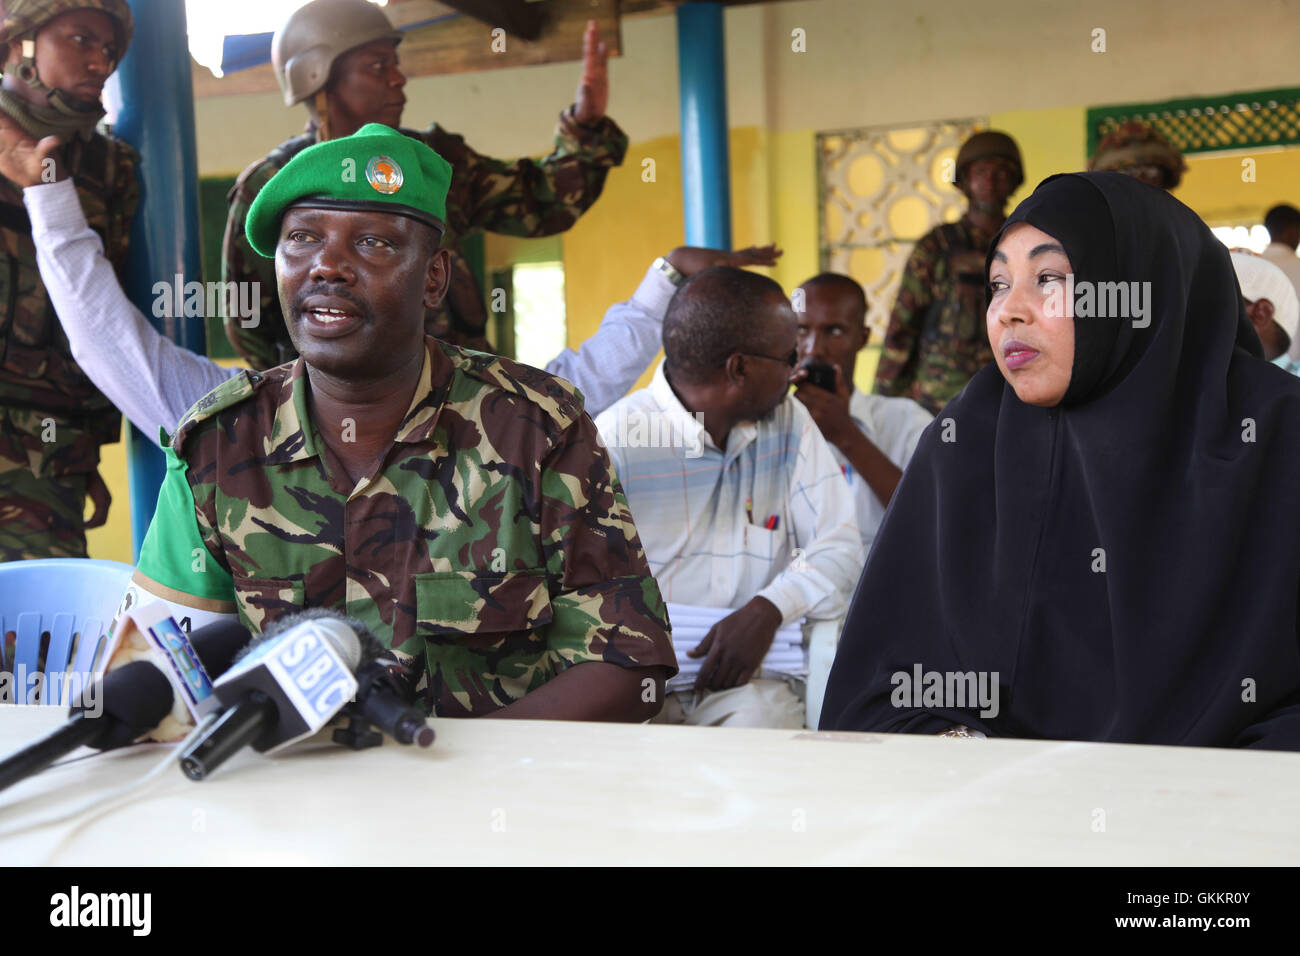 From left to right: The African Union Mission in Somalia (AMISOM) Sector Kismayo Commander, Lt. Colonel John Kipya, Stock Photo